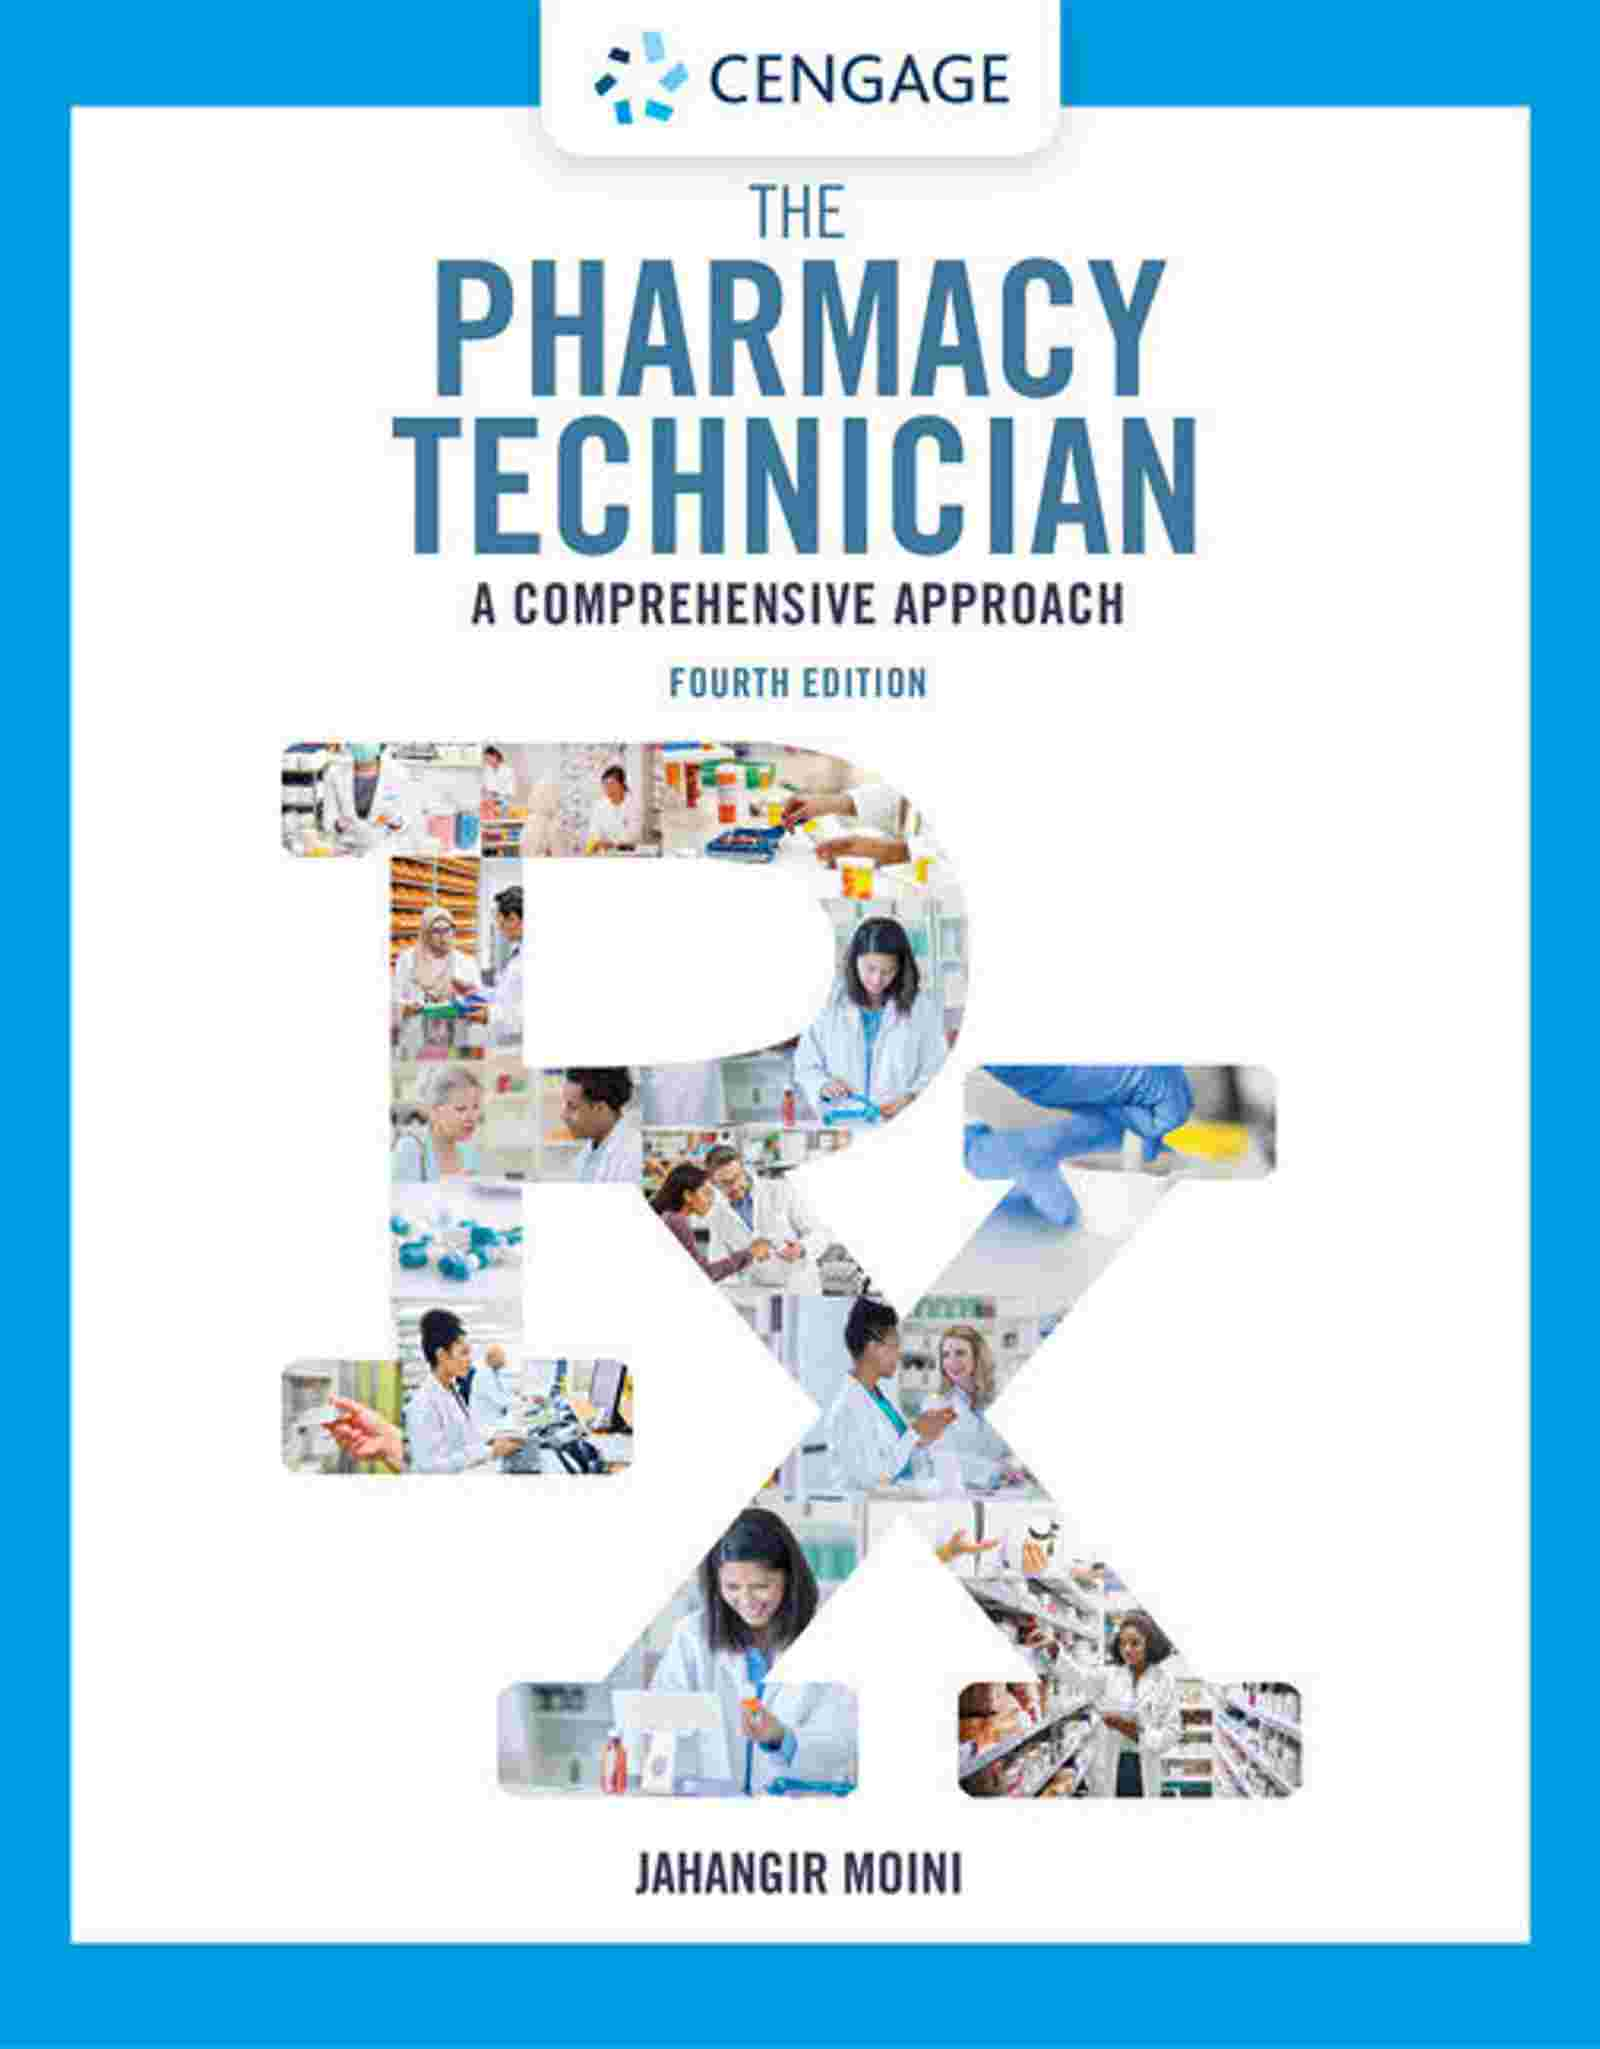 The Pharmacy Technician: A Comprehensive Approach, 4th Edition